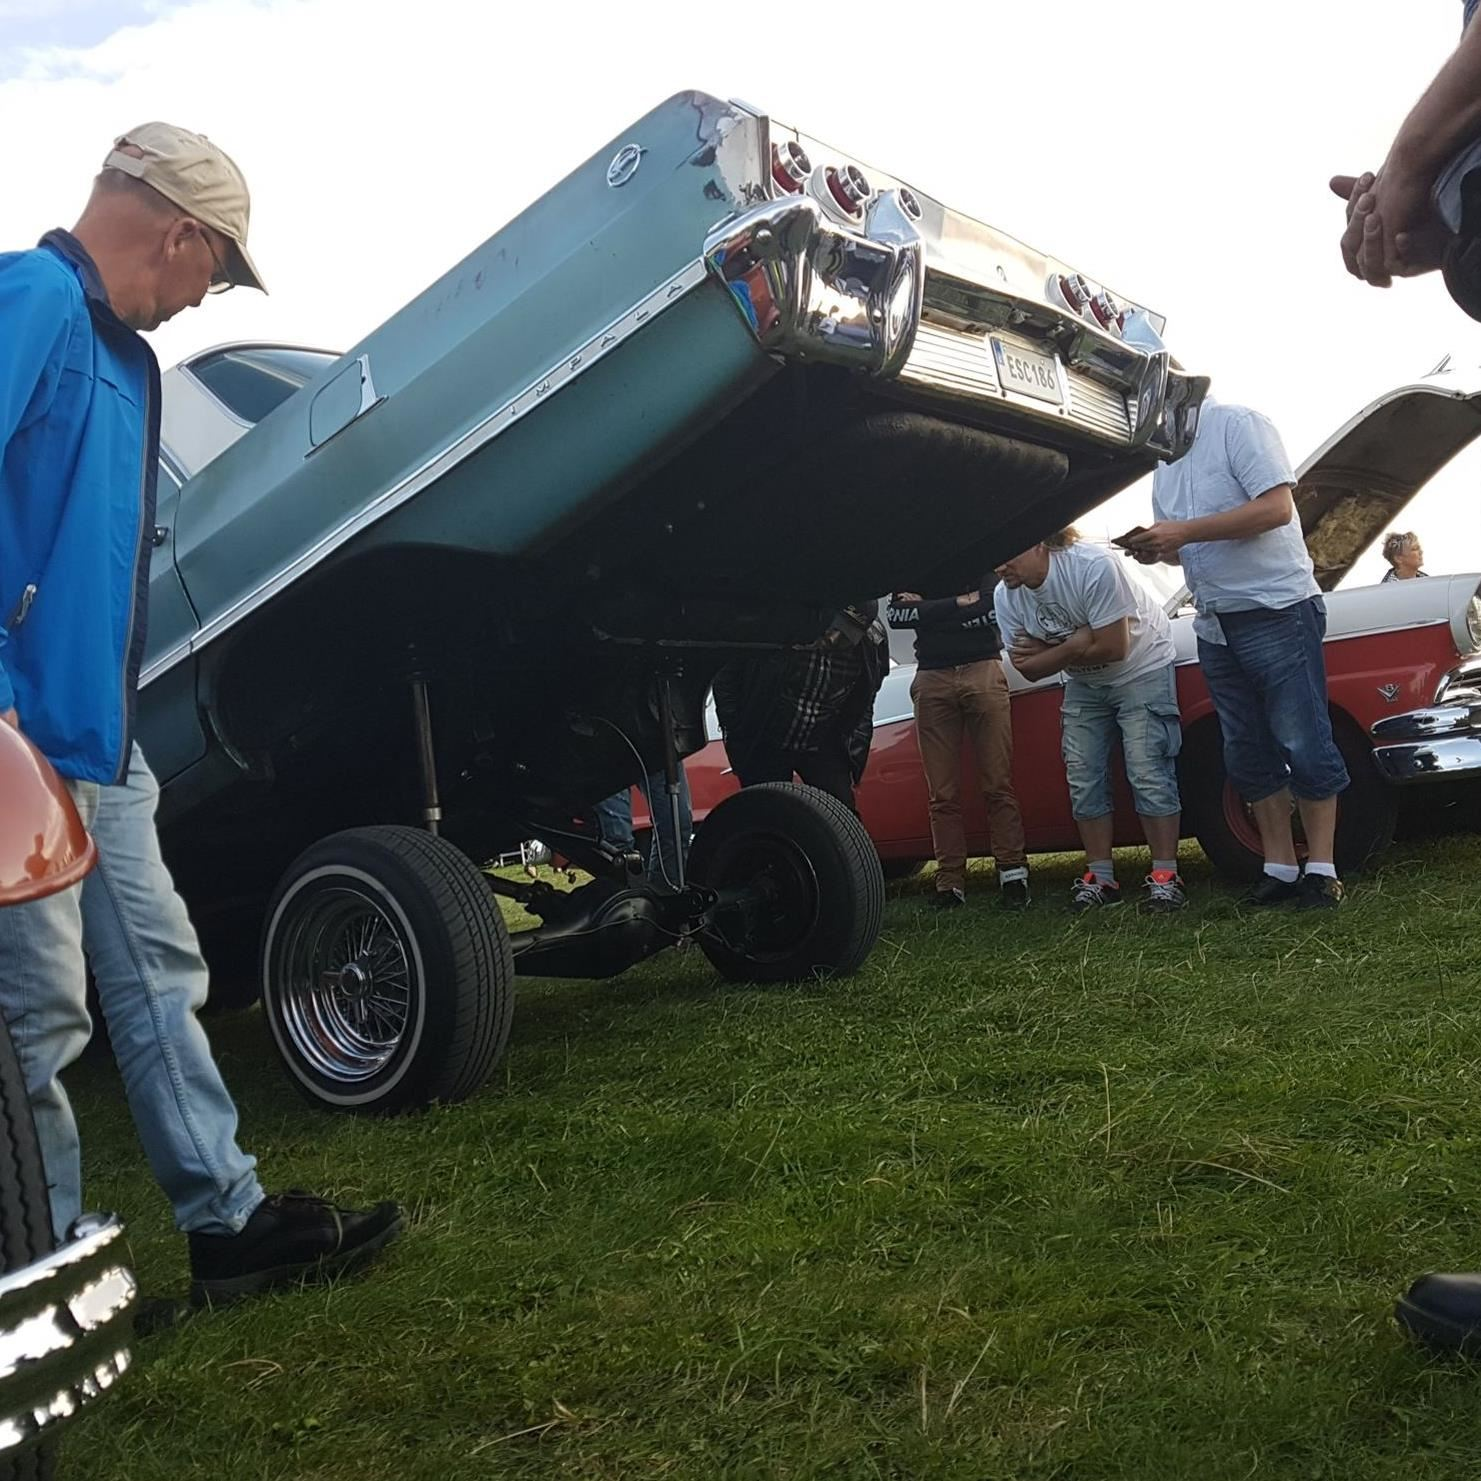 © VikingaTider, Tisdagsträffarna – The biggest car meet in south of Sweden!